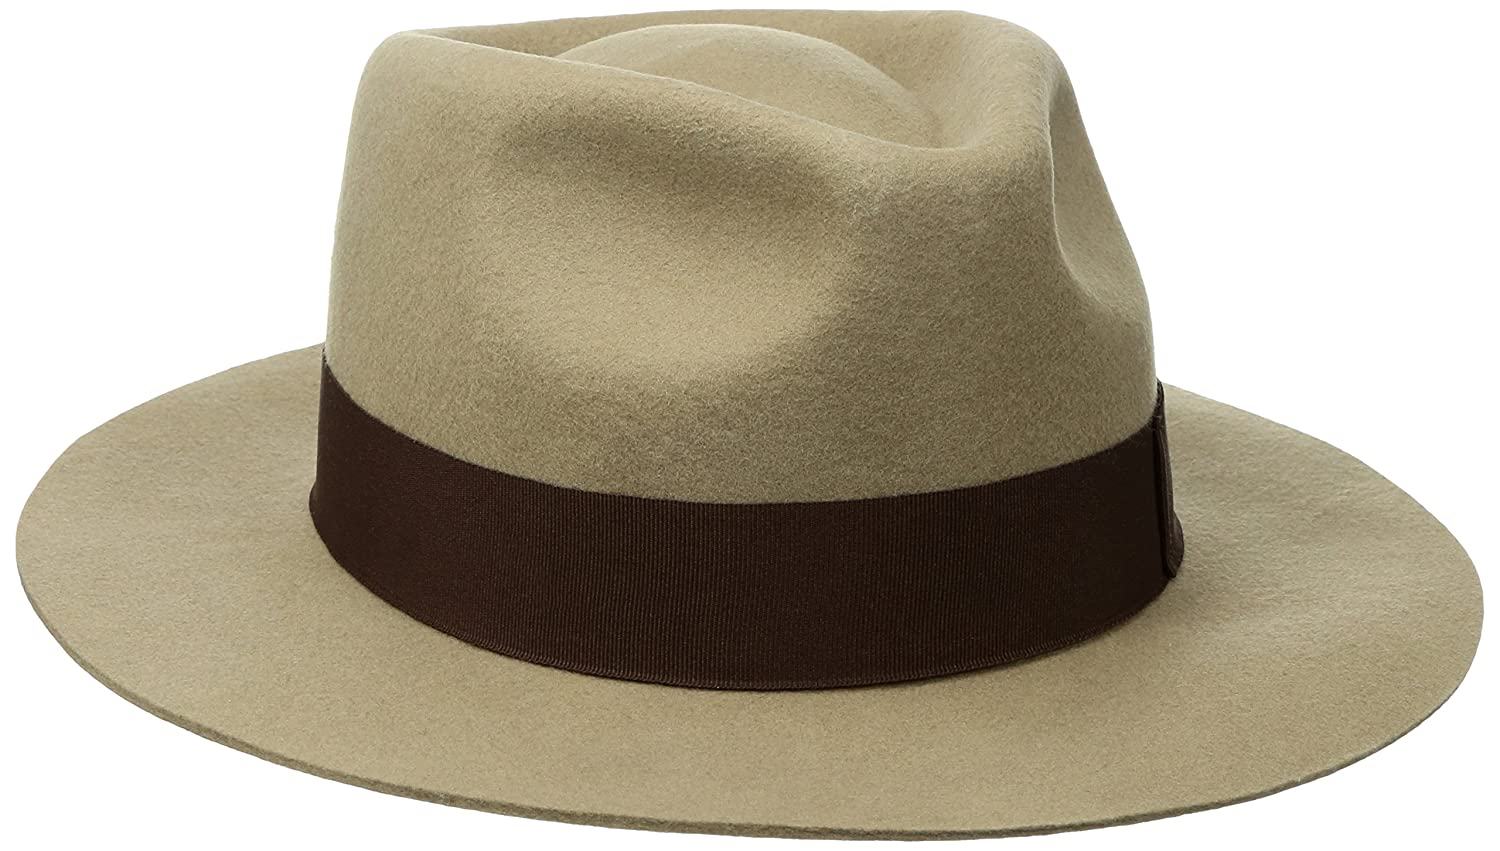 10734c391ee809 ... promo code for brixton mens deadwood fedora hat brixton young men s  00528 03296 f3371